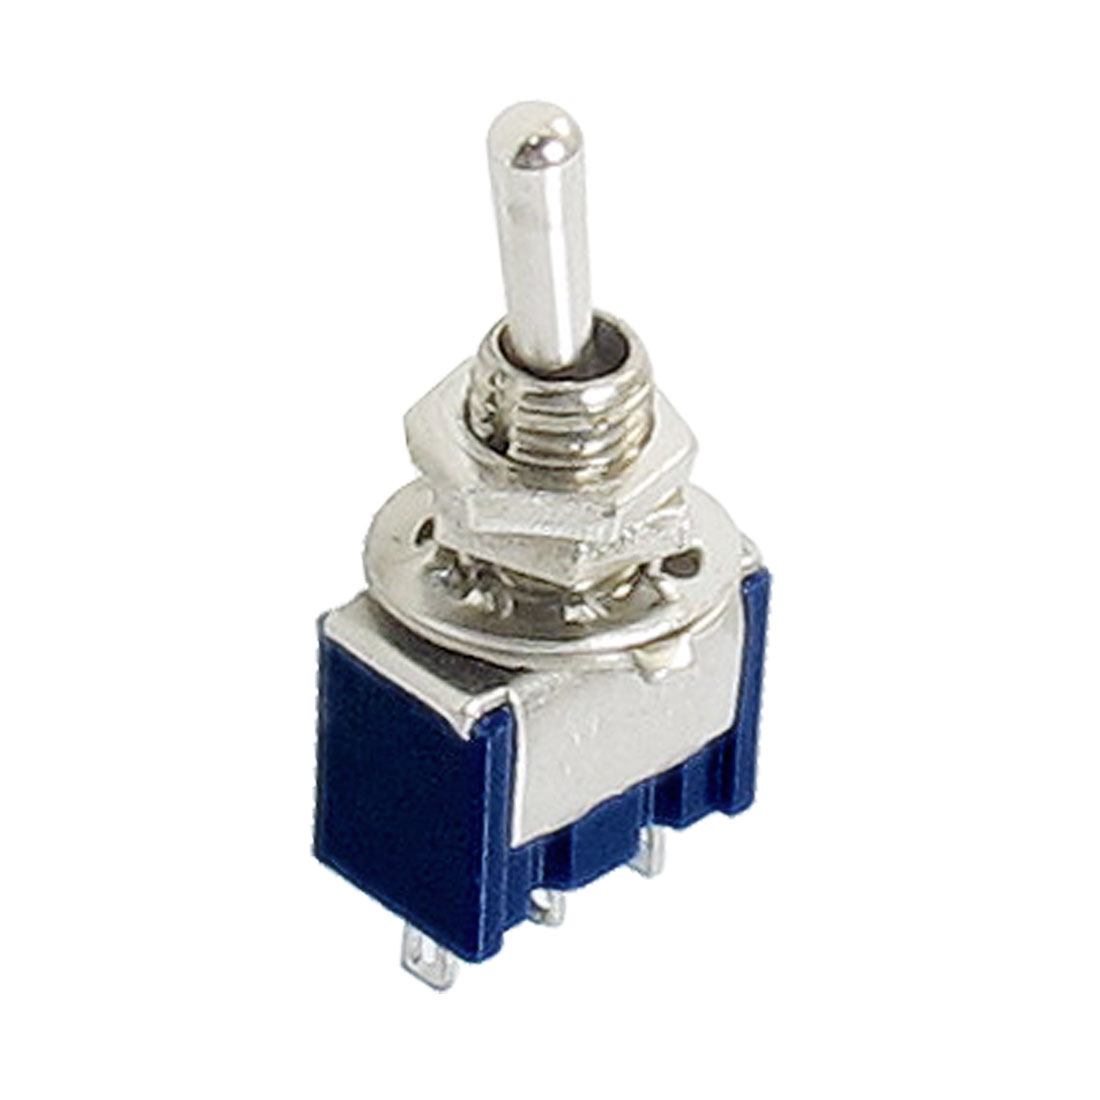 AC 250V/3A 125V/6A 3 Terminals On-On 2 Position SPDT Toggle Switch